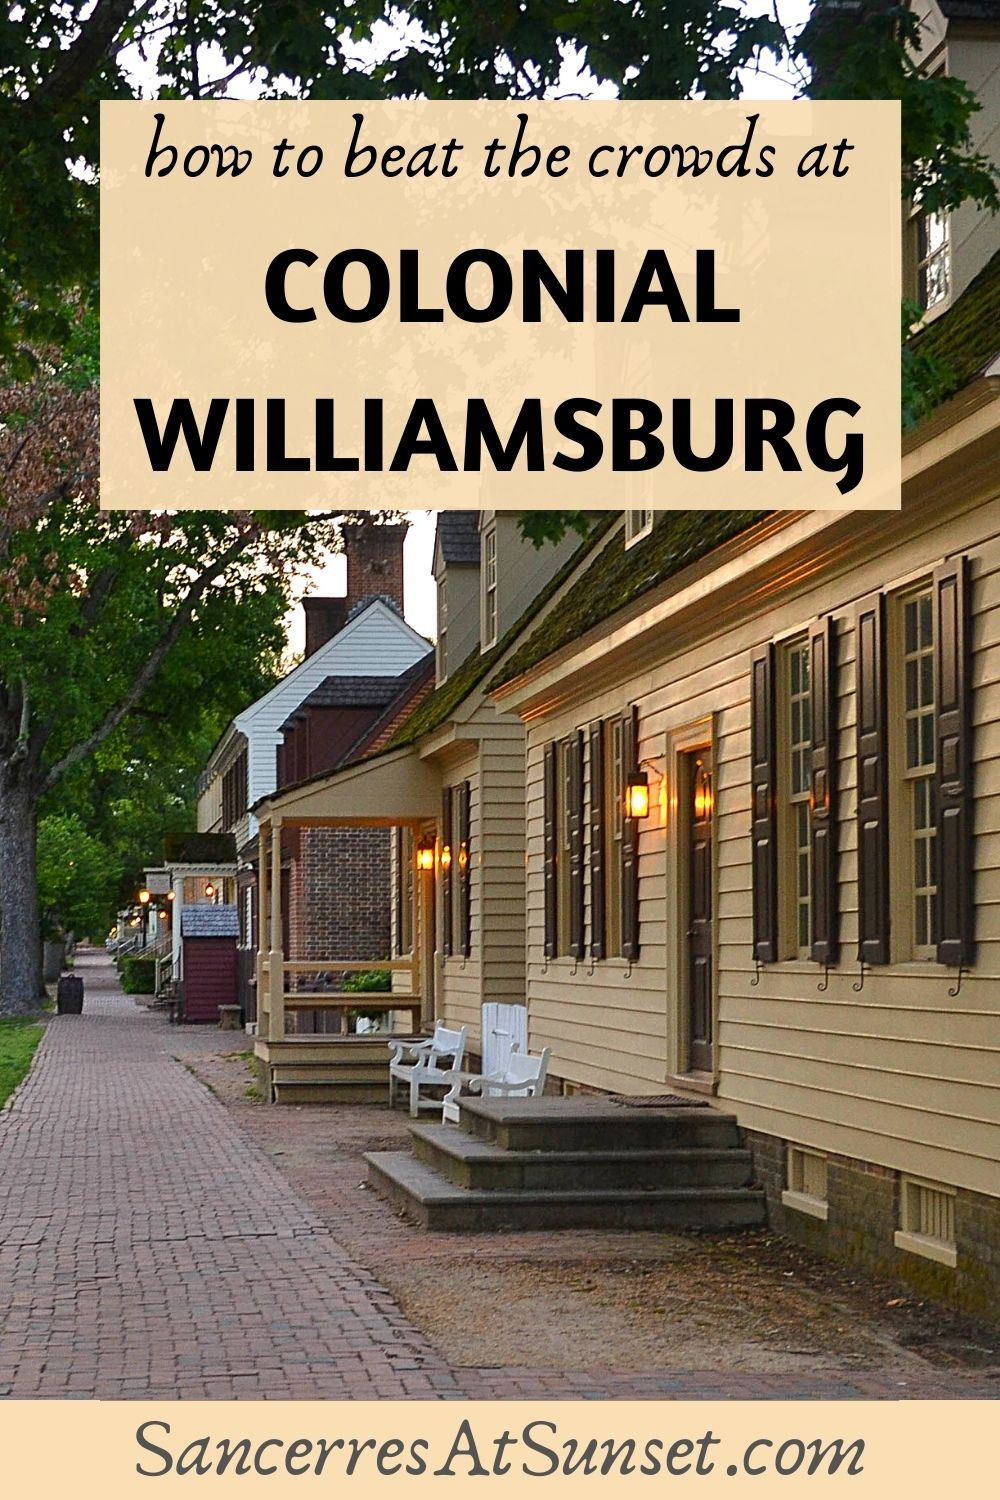 5 Ways to Beat the Crowds at Colonial Williamsburg